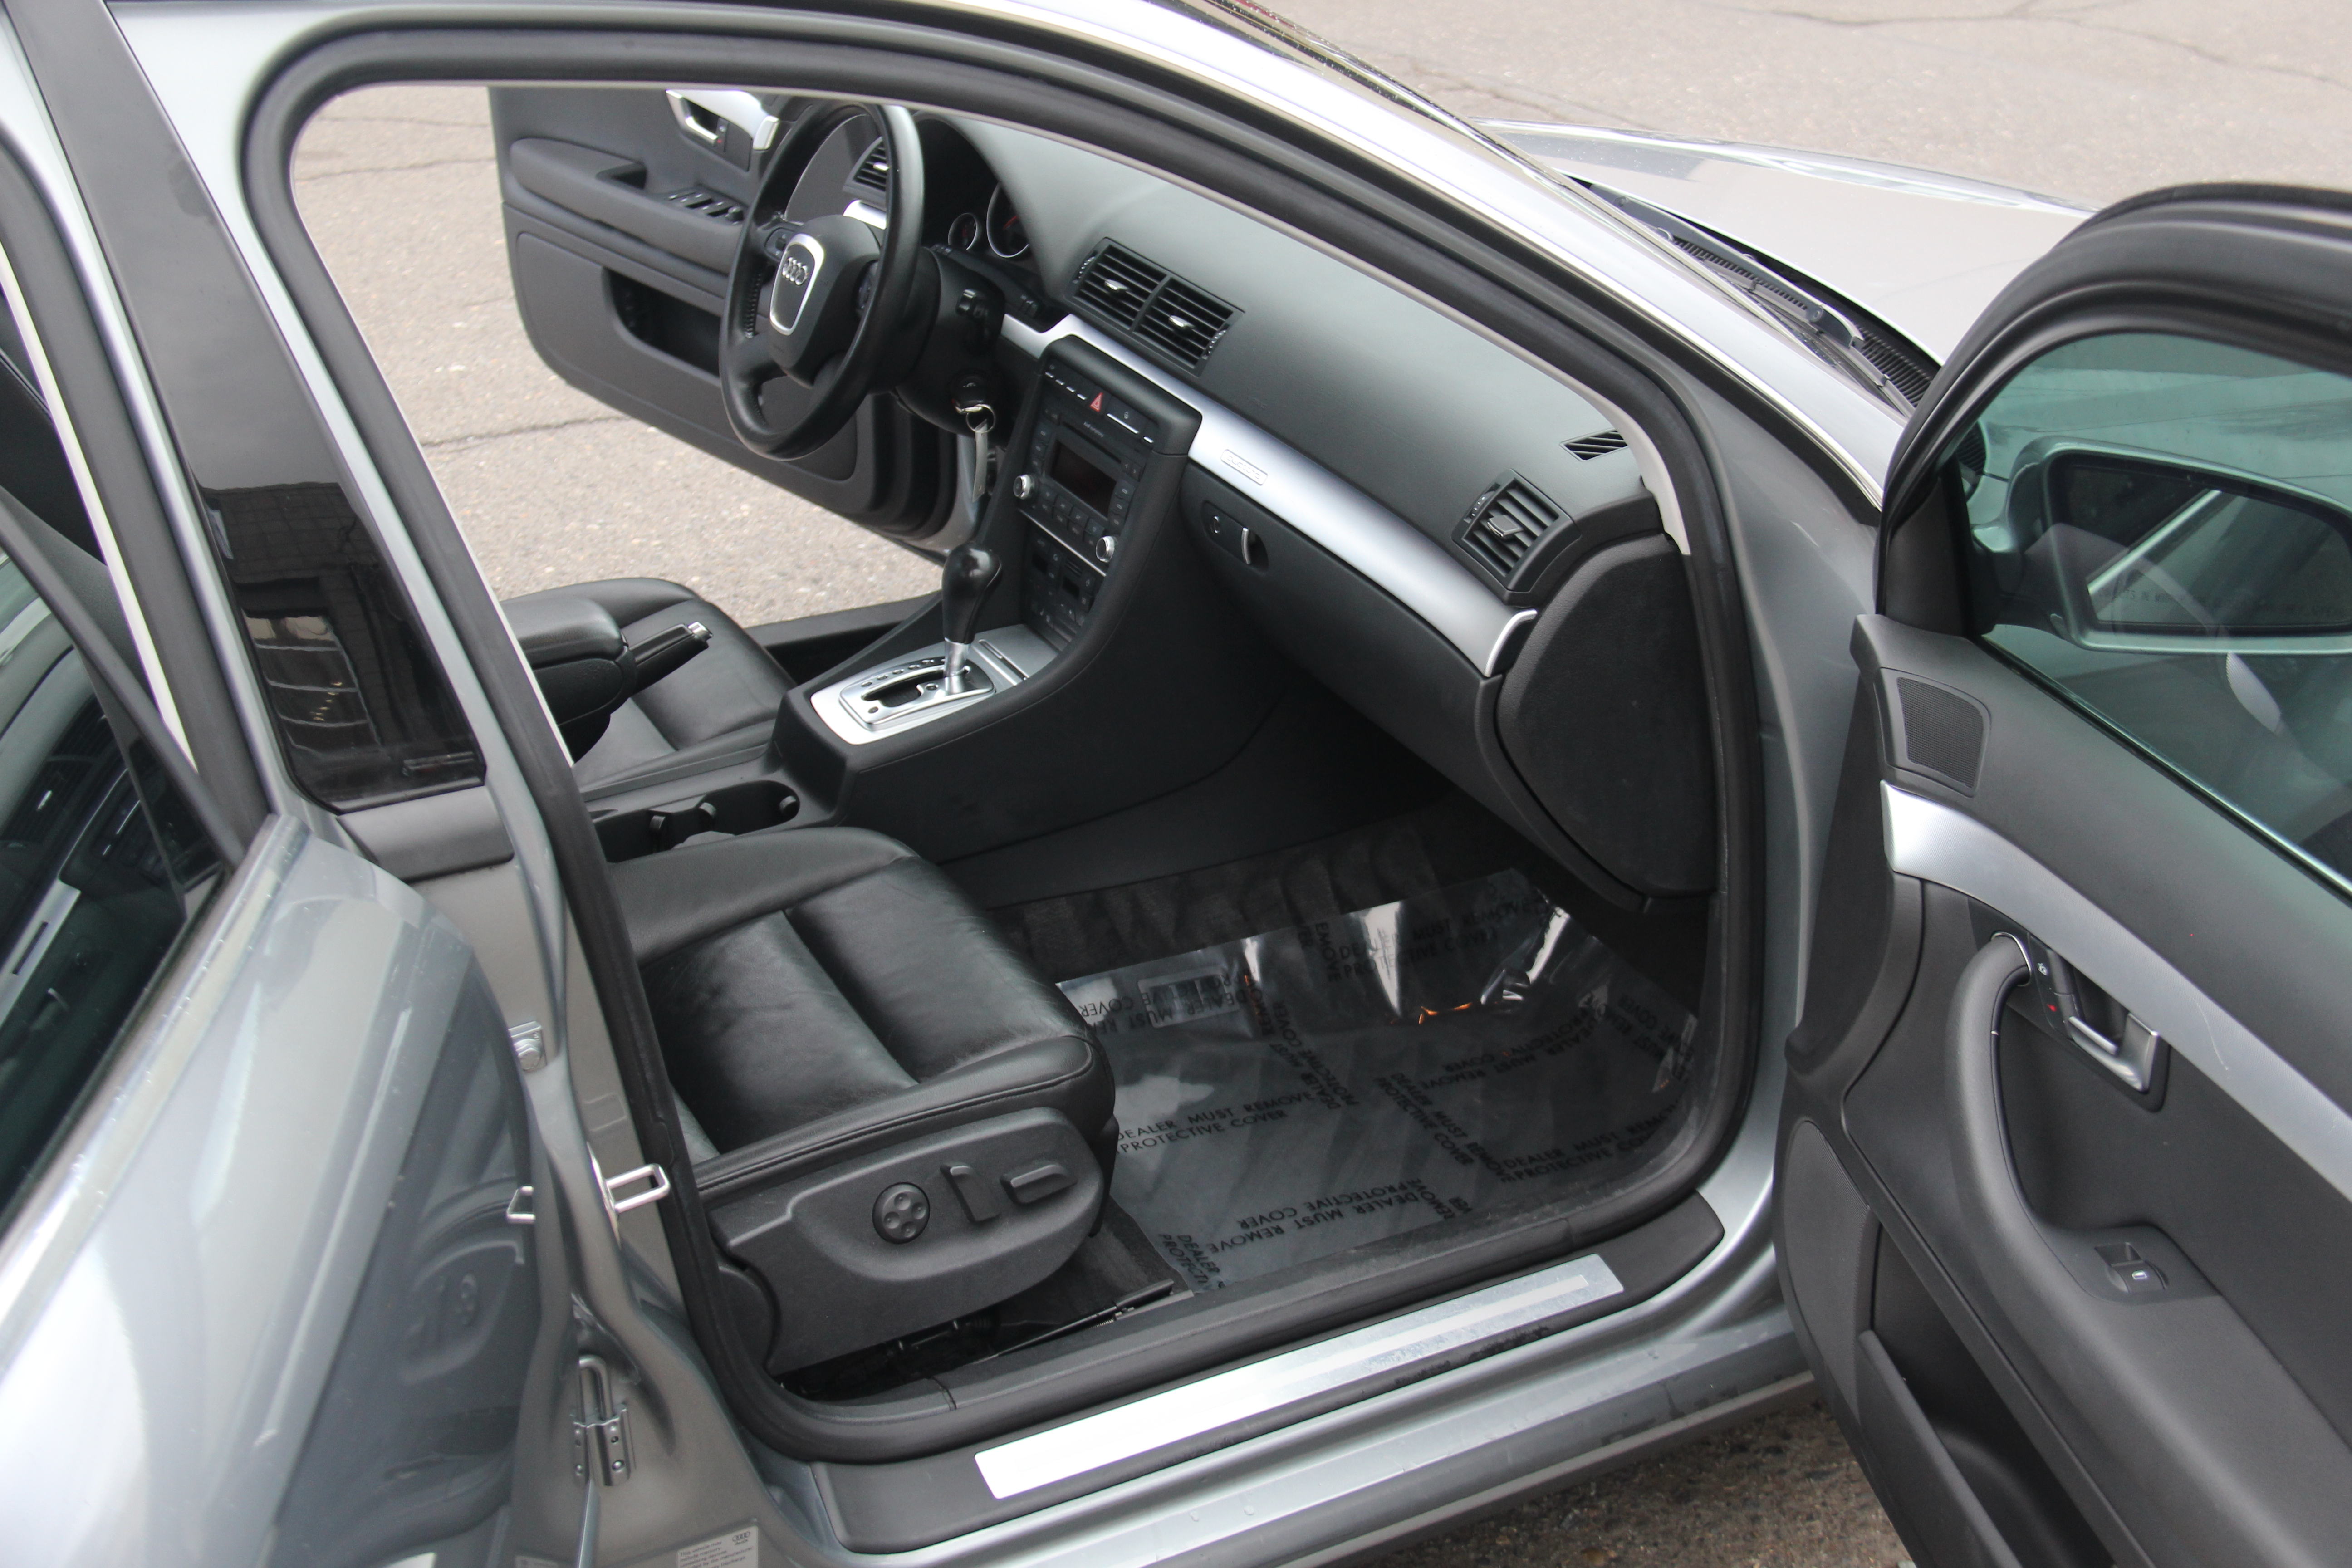 direct search audi mats results for img gen to index car floor covers result tailored your seat catalogsearch